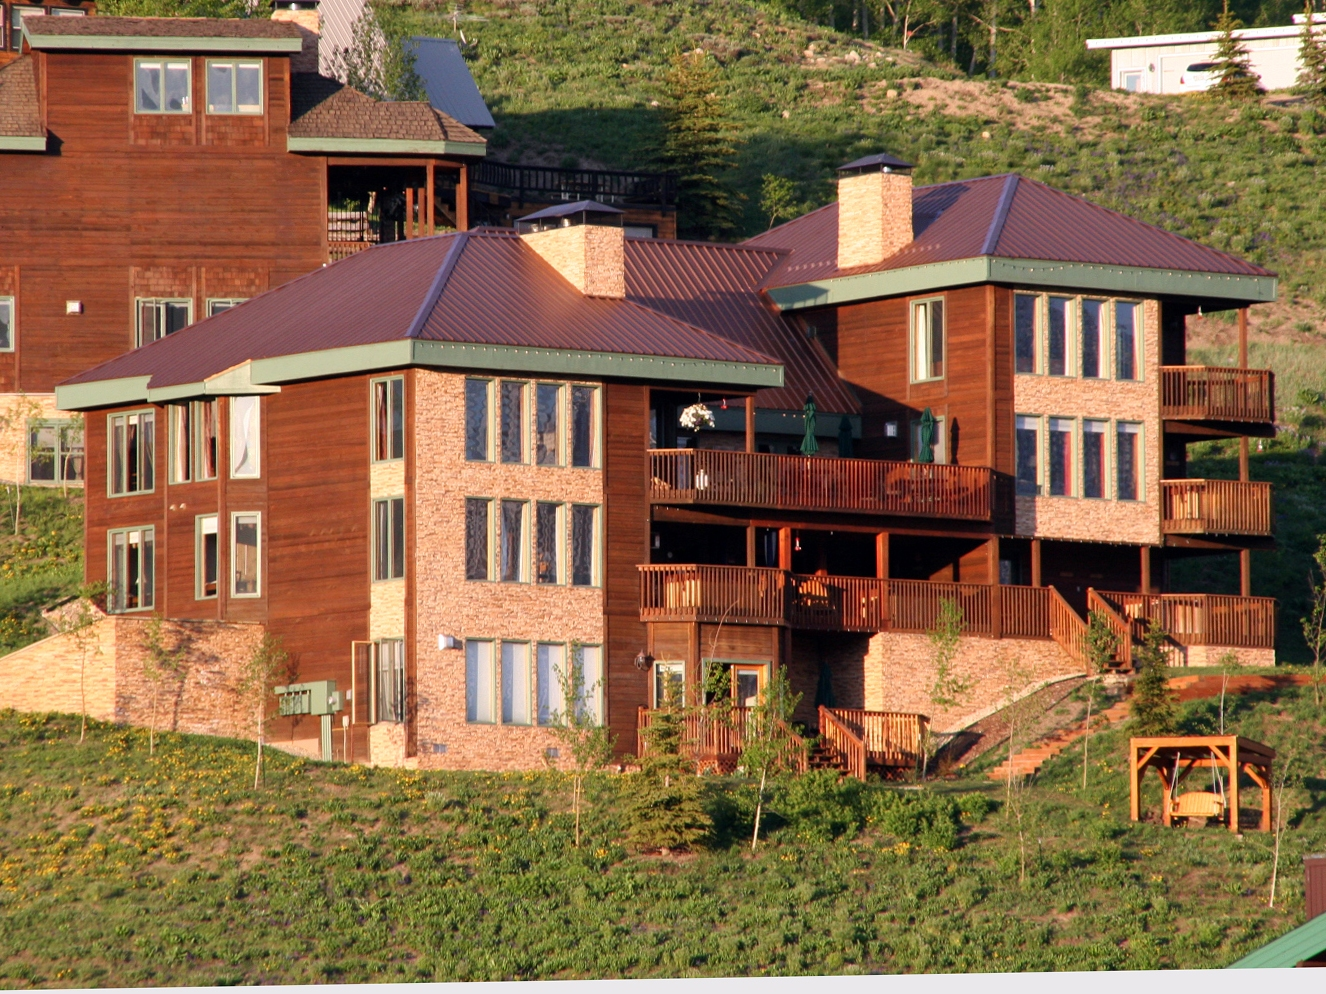 Single Family Home for Sale at Spectacular Mountain Retreat 39 Whetstone Road Crested Butte, Colorado 81225 United States